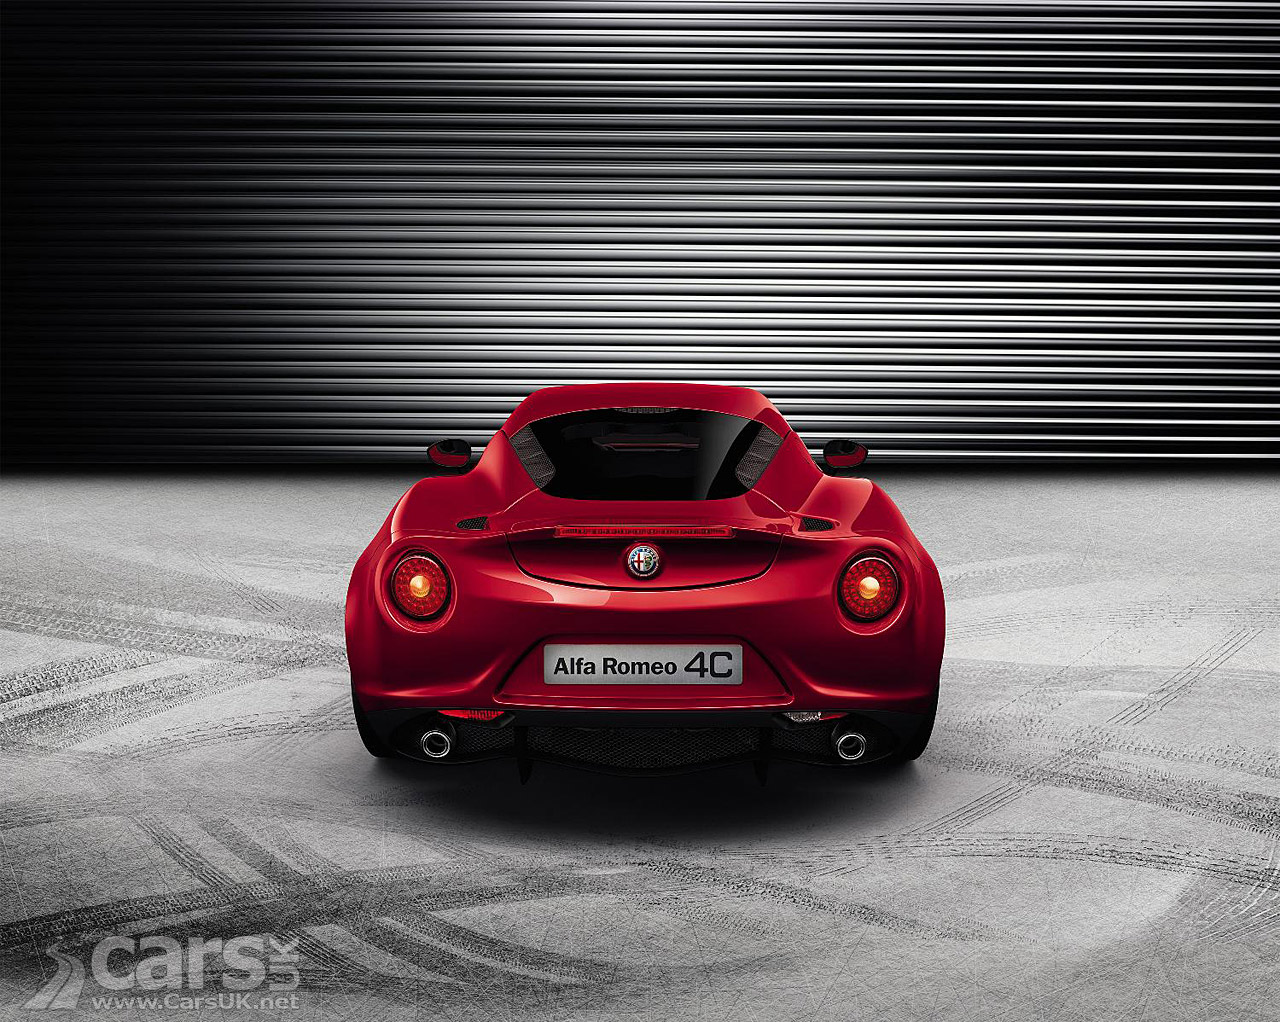 Alfa Romeo 4C production version in red top rear view image